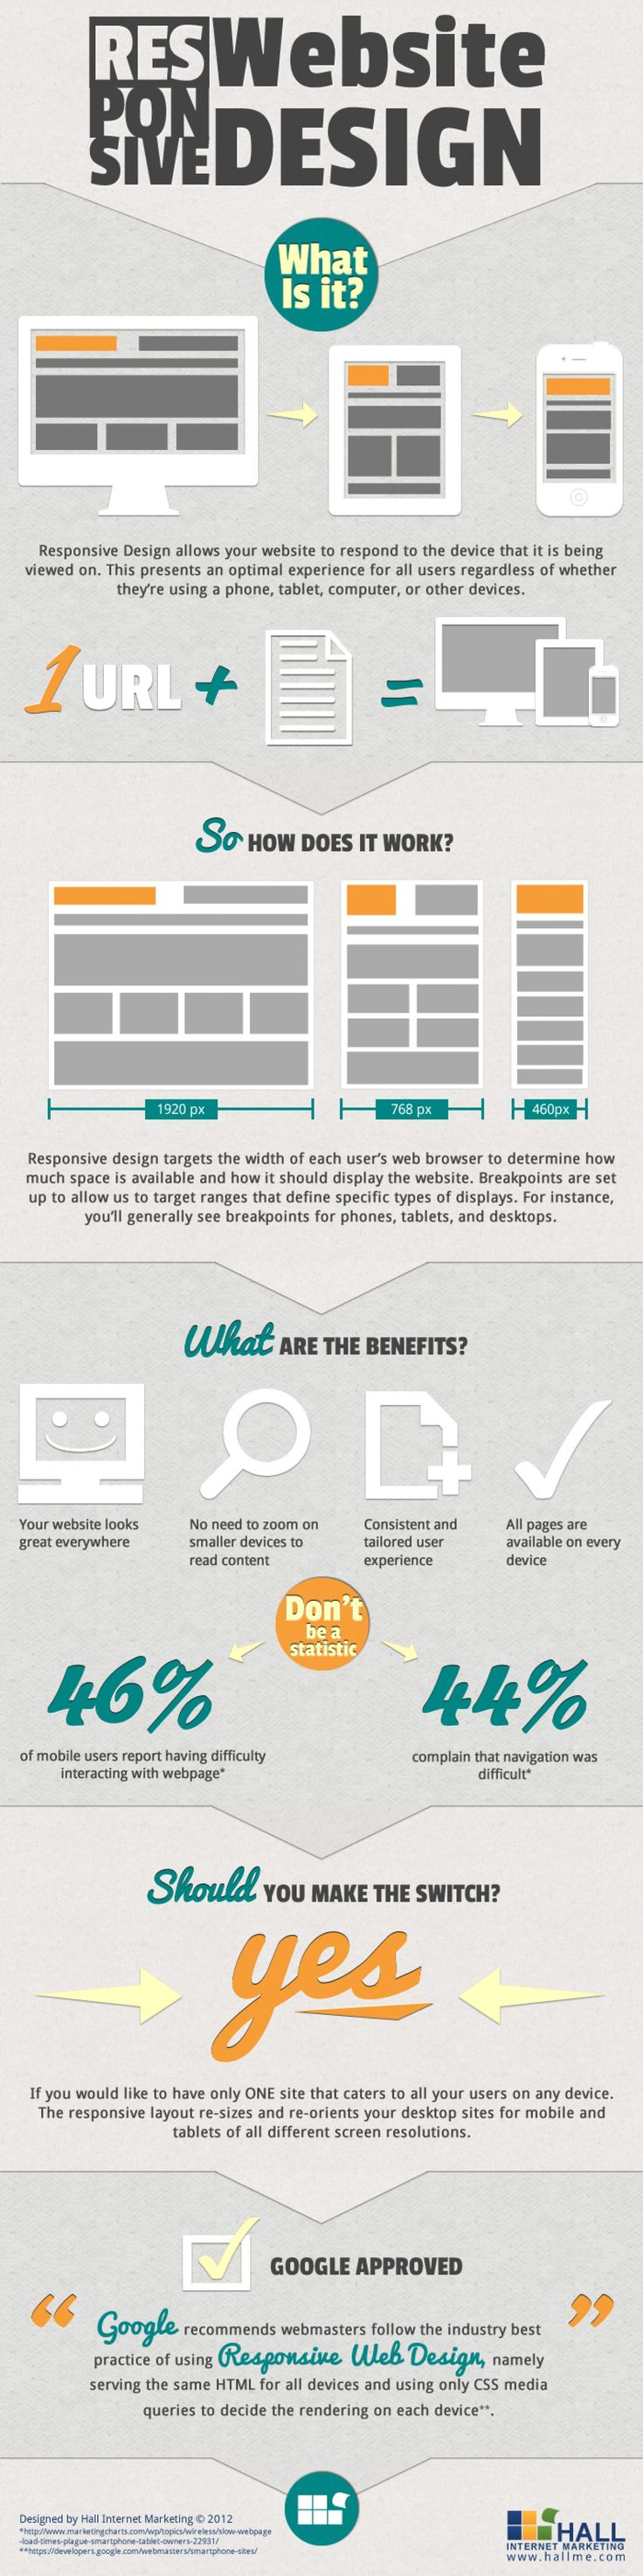 Responsive Website Design – What is it? By www.pinterest.com/riddstanwer/